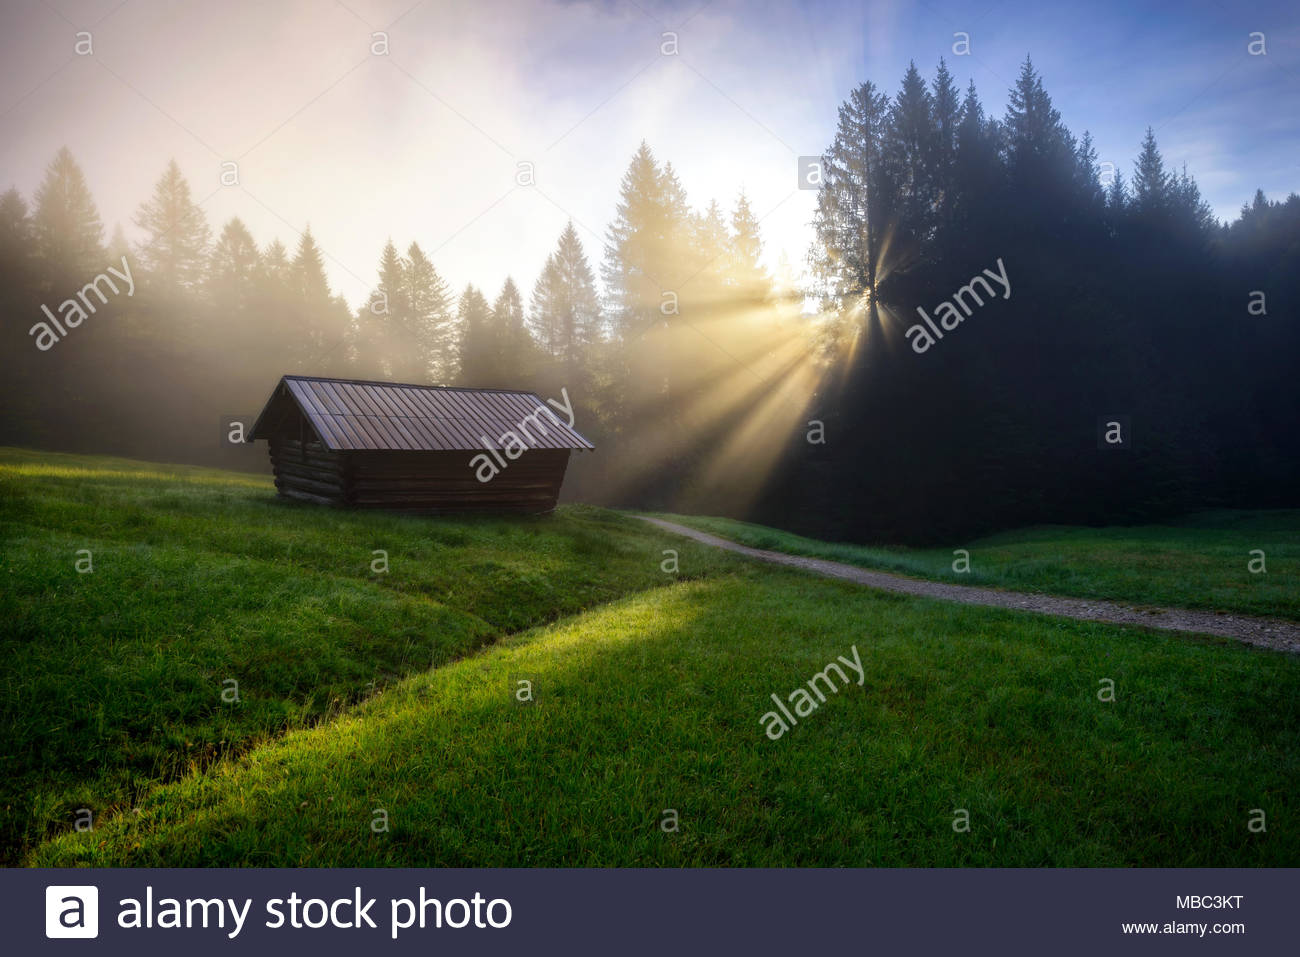 Geroldsee forest during summer day with beautiful foggy sunrise over trees, Bavarian Alps, Bavaria, Germany. - Stock Image